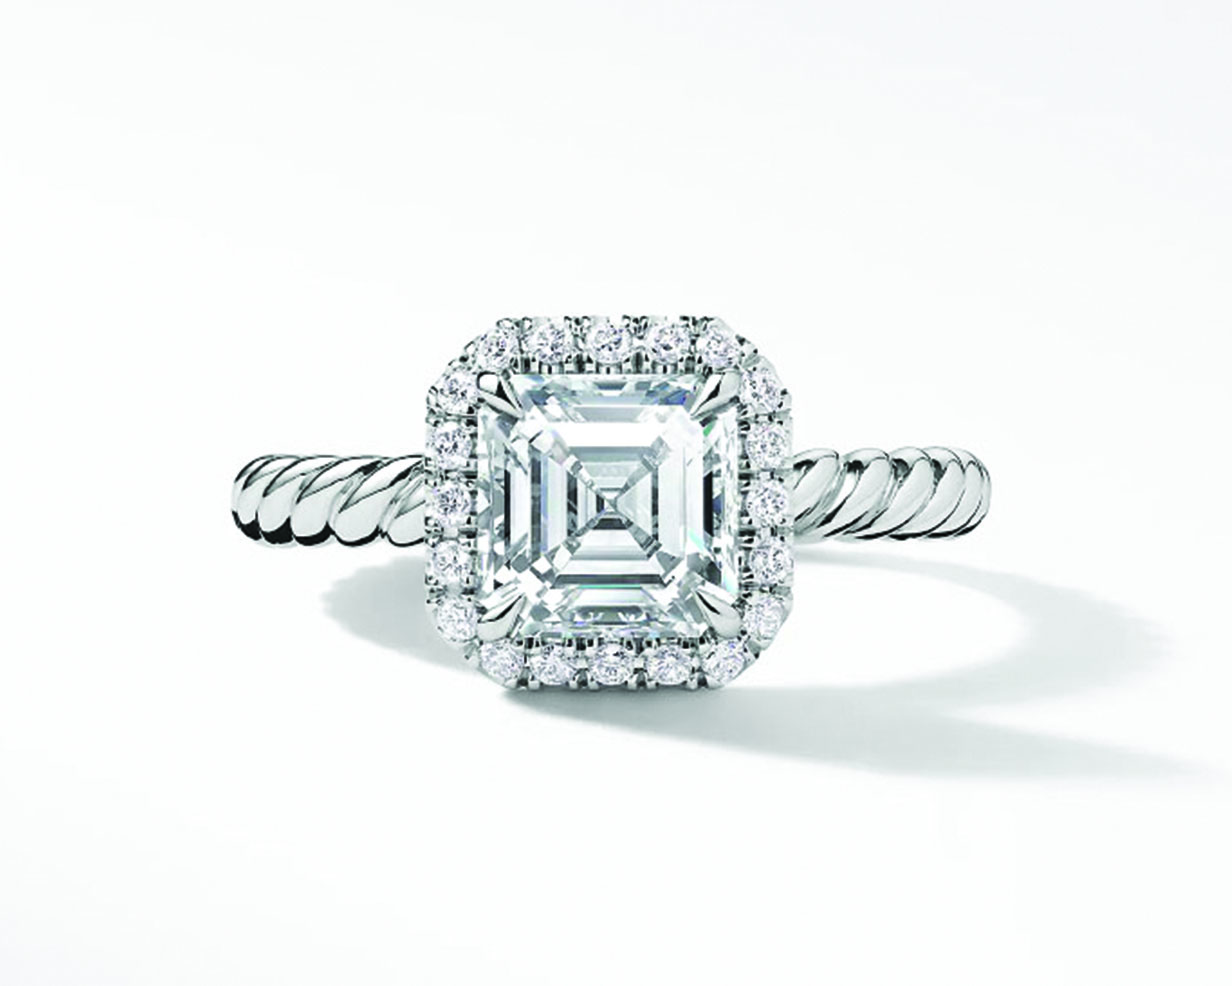 Asscher cut diamond engagement ring with paved halo and twisted platinum band